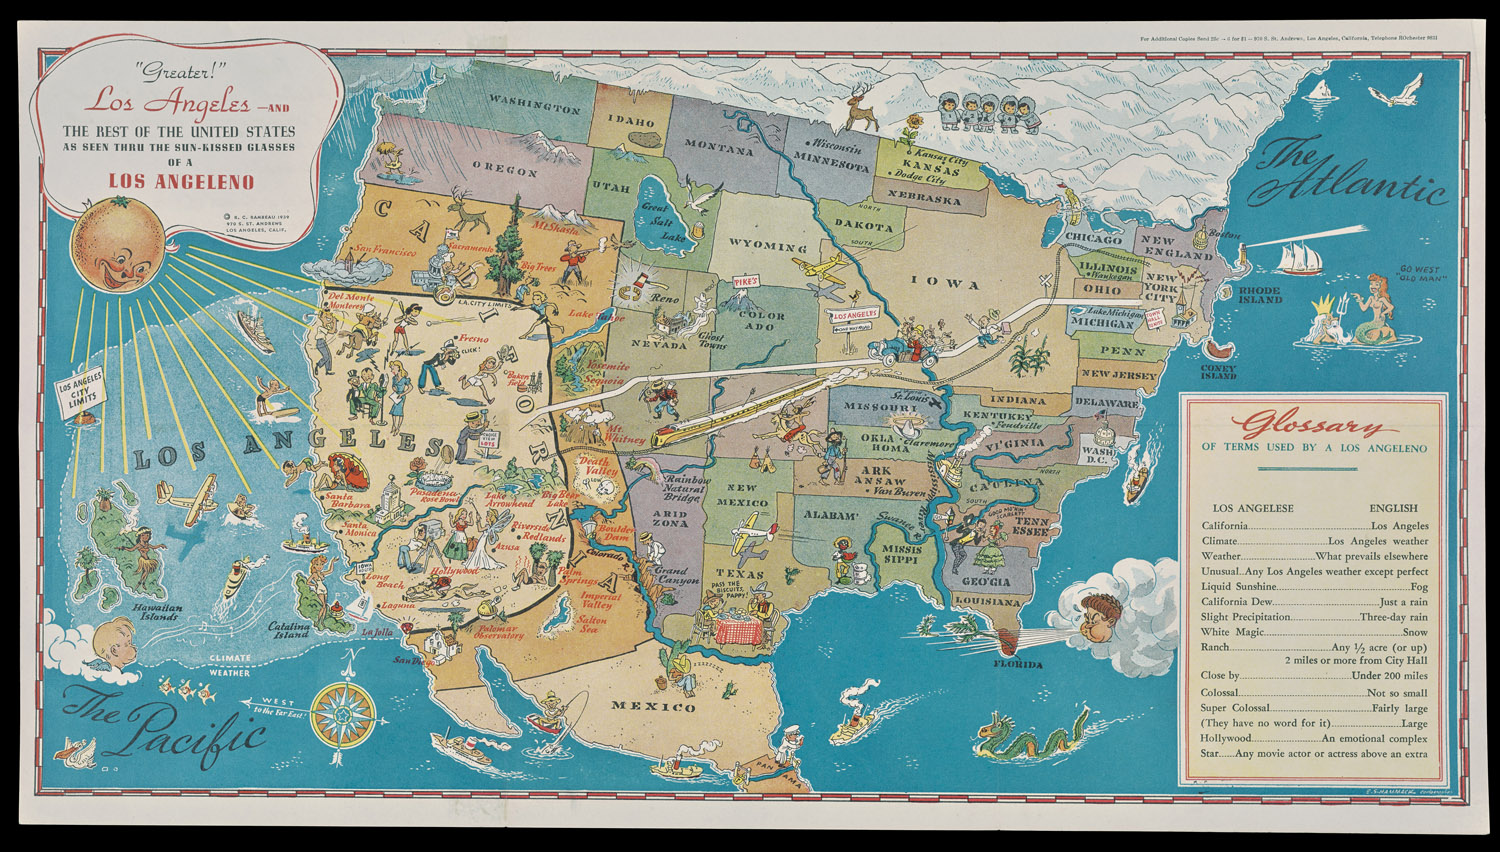 This 1939 Map Shows America, As Seen Through The Eyes Of An ... Map Greater Los Angeles on map greater tacoma, map long beach, map hollywood, map bay area, map greater nashville, map bangkok tourist attractions, map inland empire, map greater denver, greater toronto area, map san francisco, map new york, map greater boston, map anaheim, map santa monica, atlanta metropolitan area, map beverly hills, inland empire, los angeles metropolitan area, dallas/fort worth metroplex, map santa barbara, seoul national capital area, map san gabriel valley, baltimore–washington metropolitan area, new york metropolitan area, greater houston, map salt lake city, map south orange county, map minneapolis, greater tokyo area, map silicon valley, los angeles county, san diego metropolitan area, orange county,